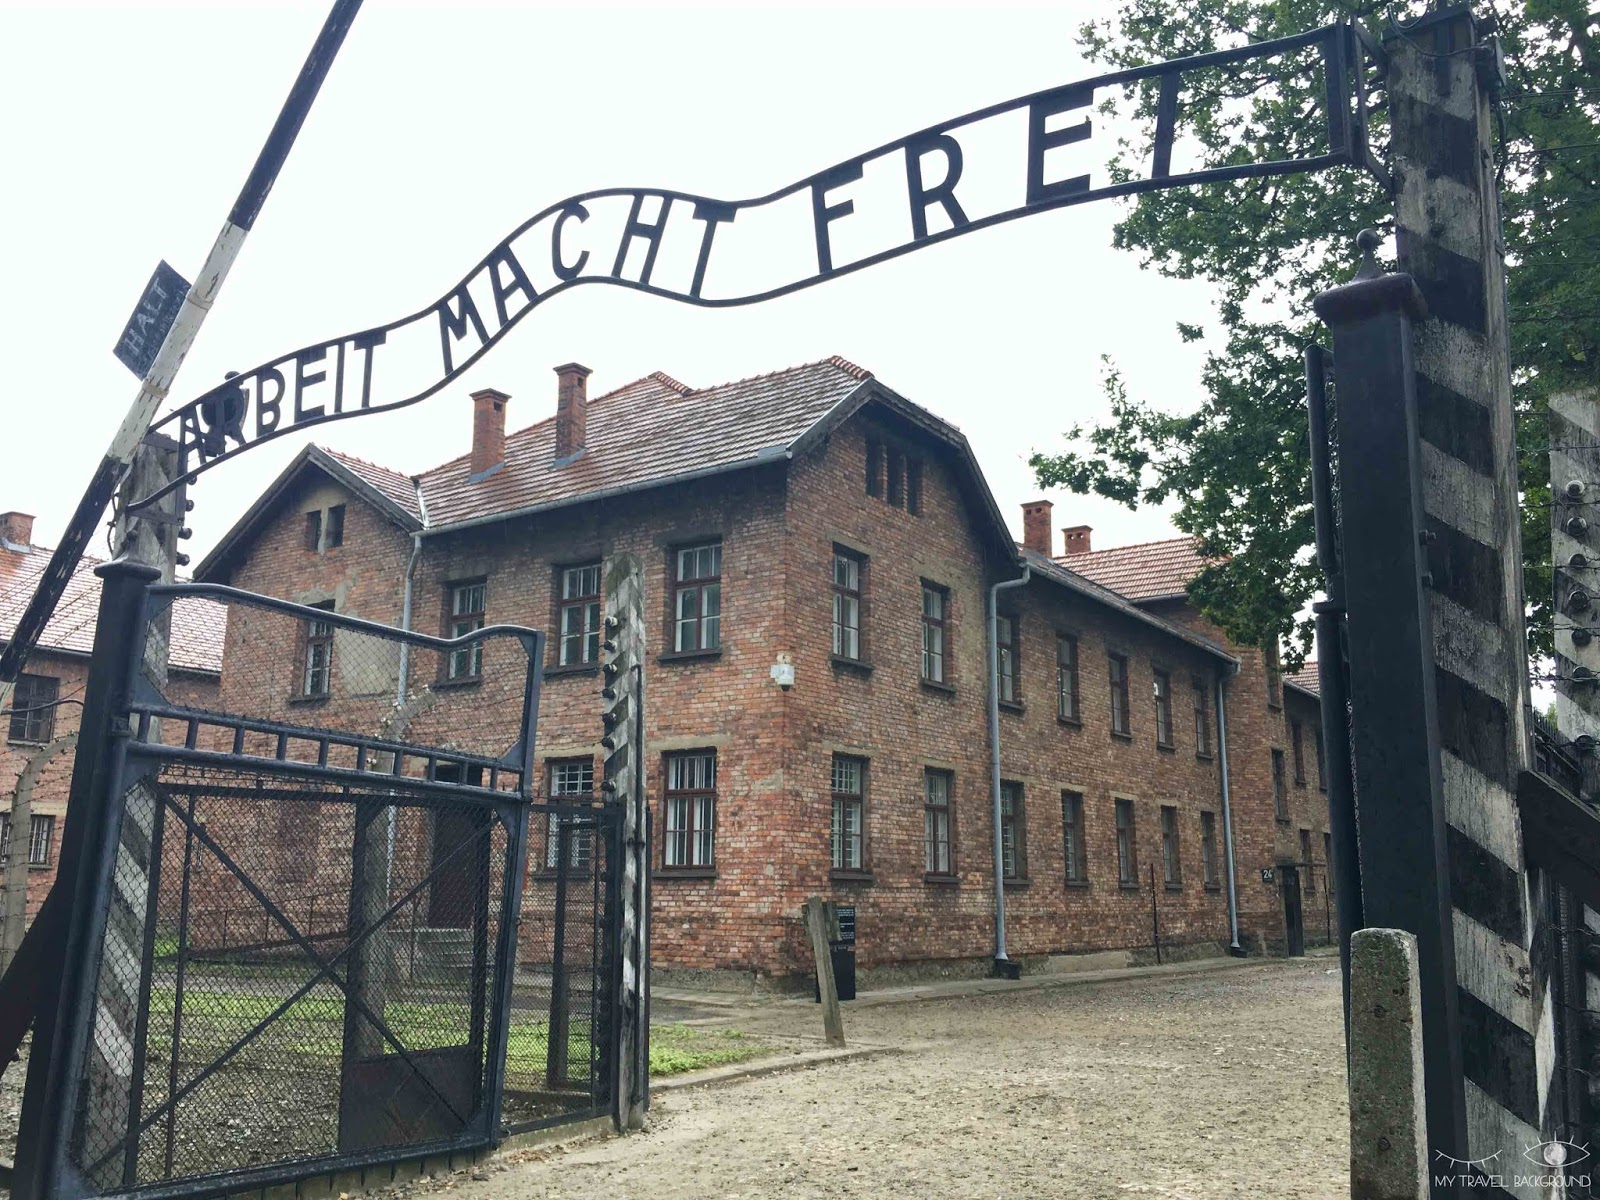 My Travel Background : Visiter Auschwitz-Birkenau